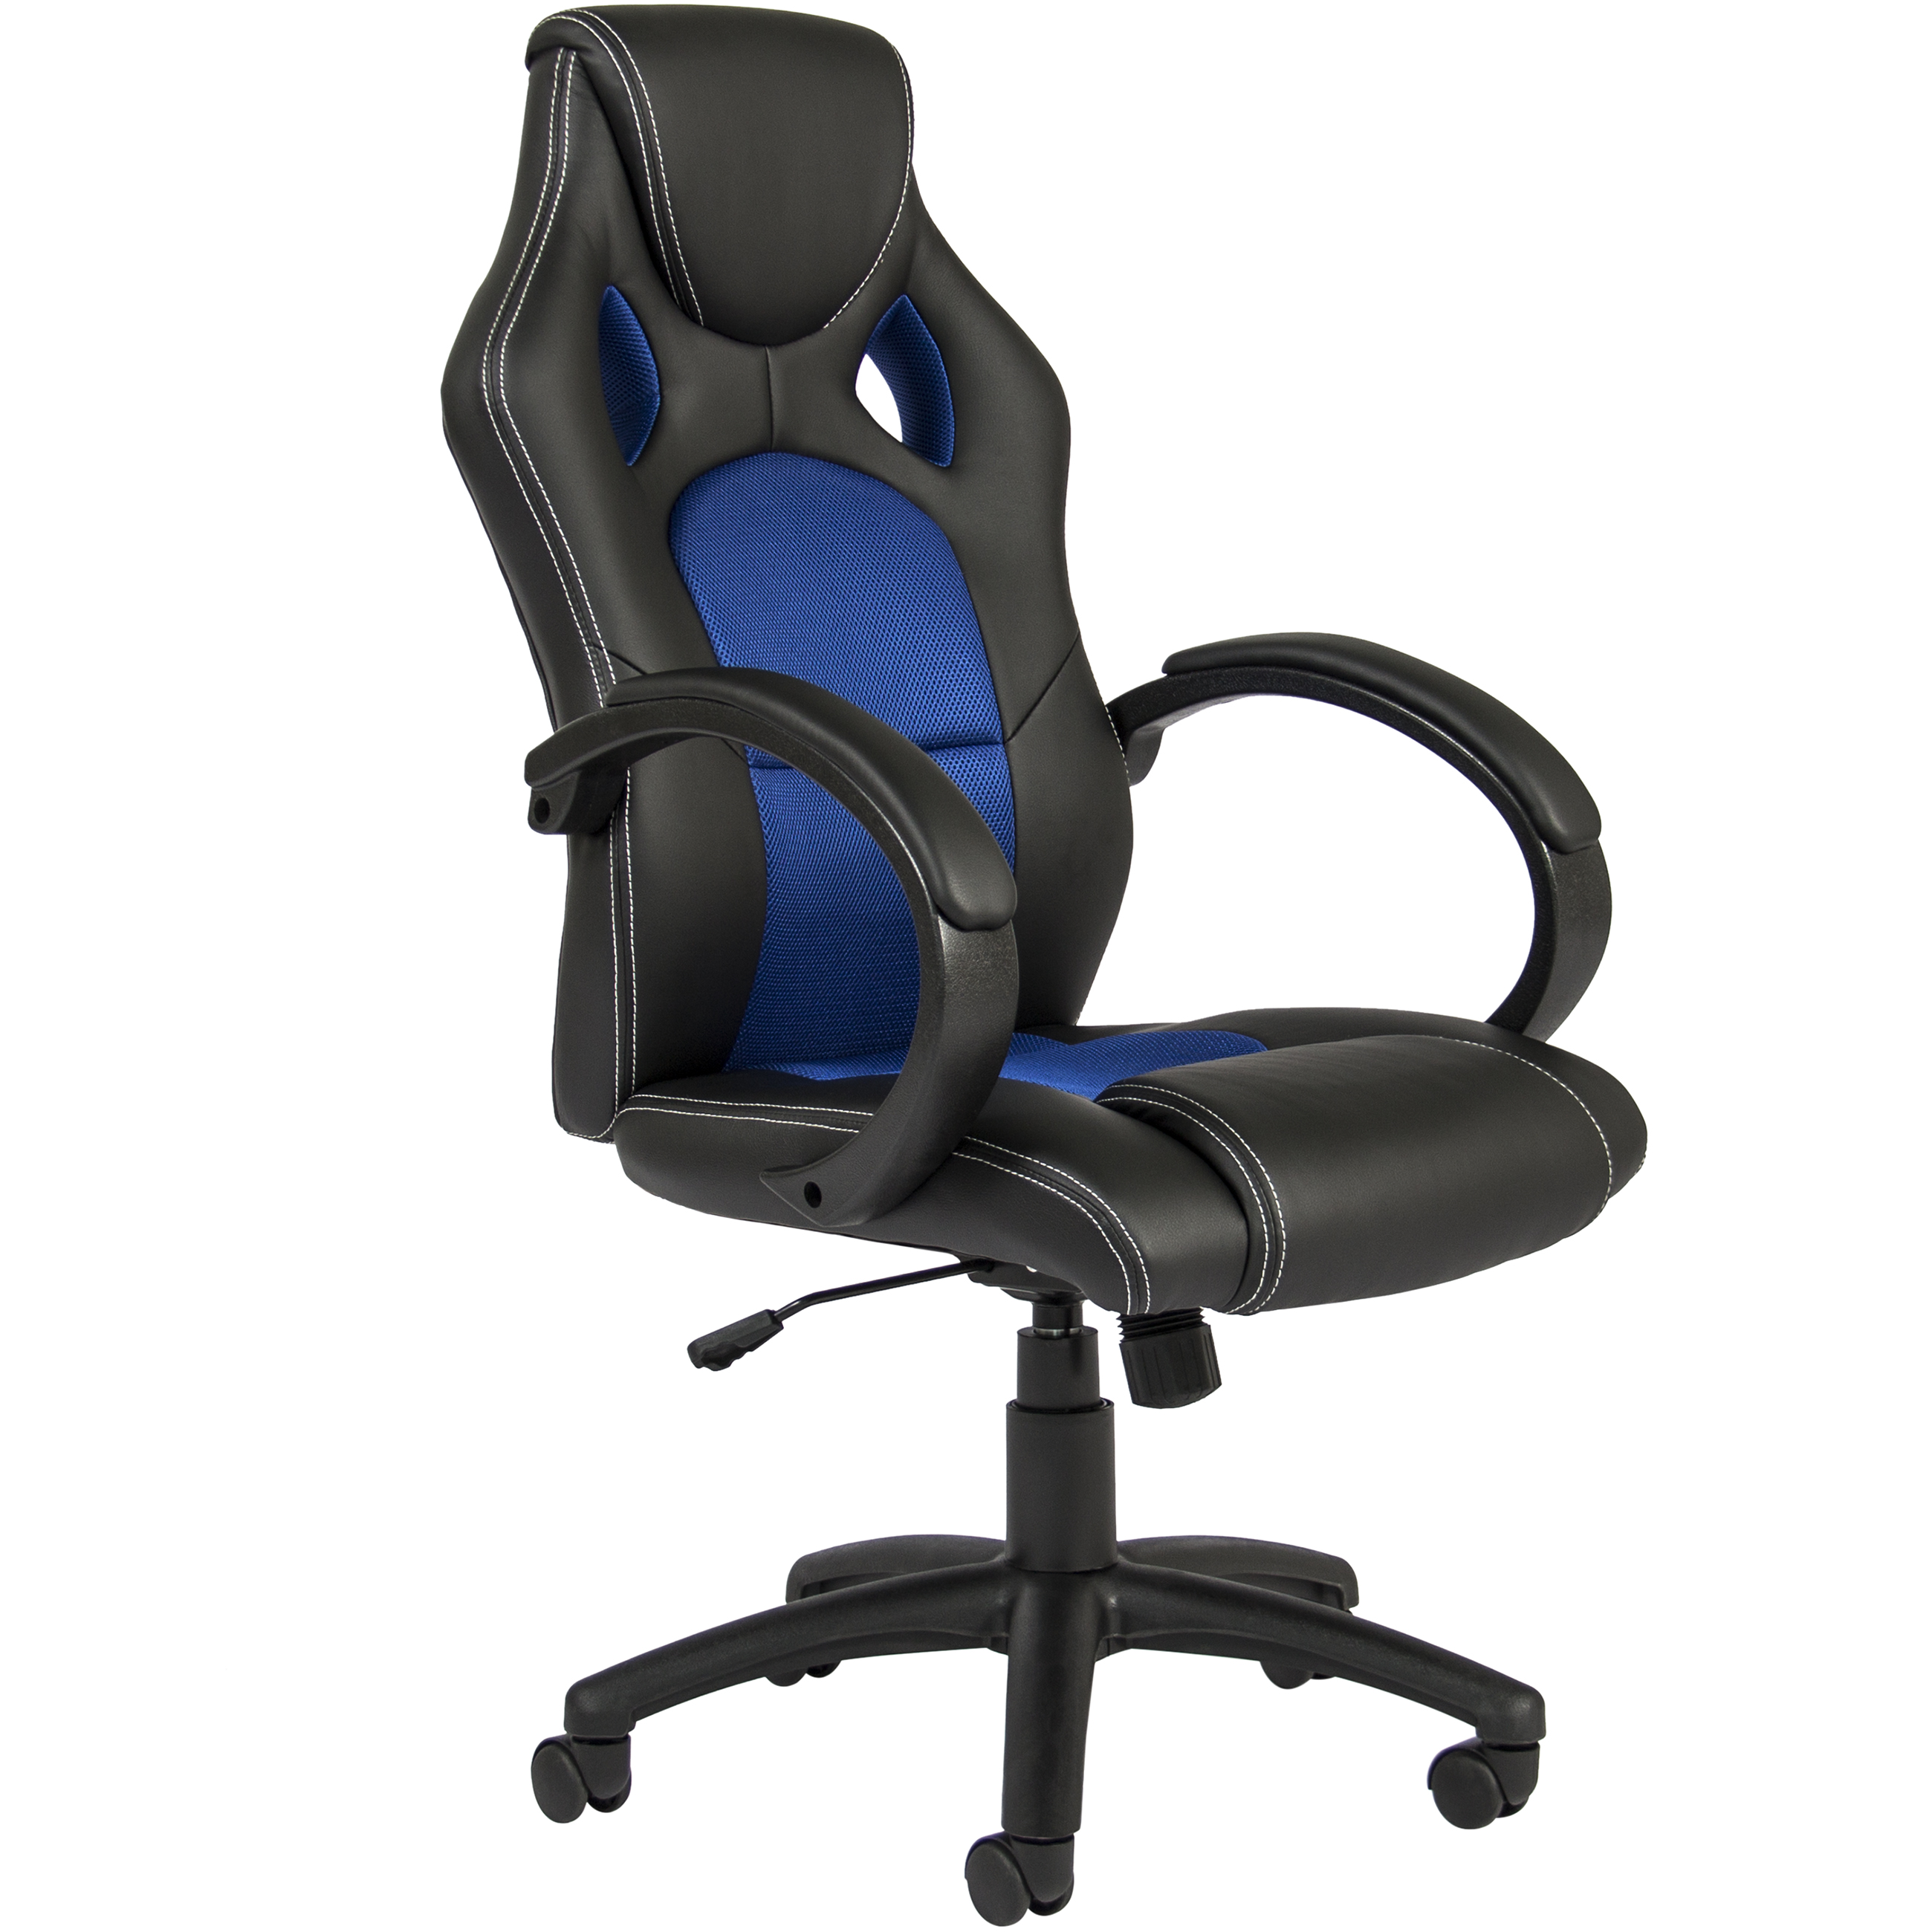 name brand style brands expensive affordable best size full desk office s chair ideas ergonomic five durable for of furniture